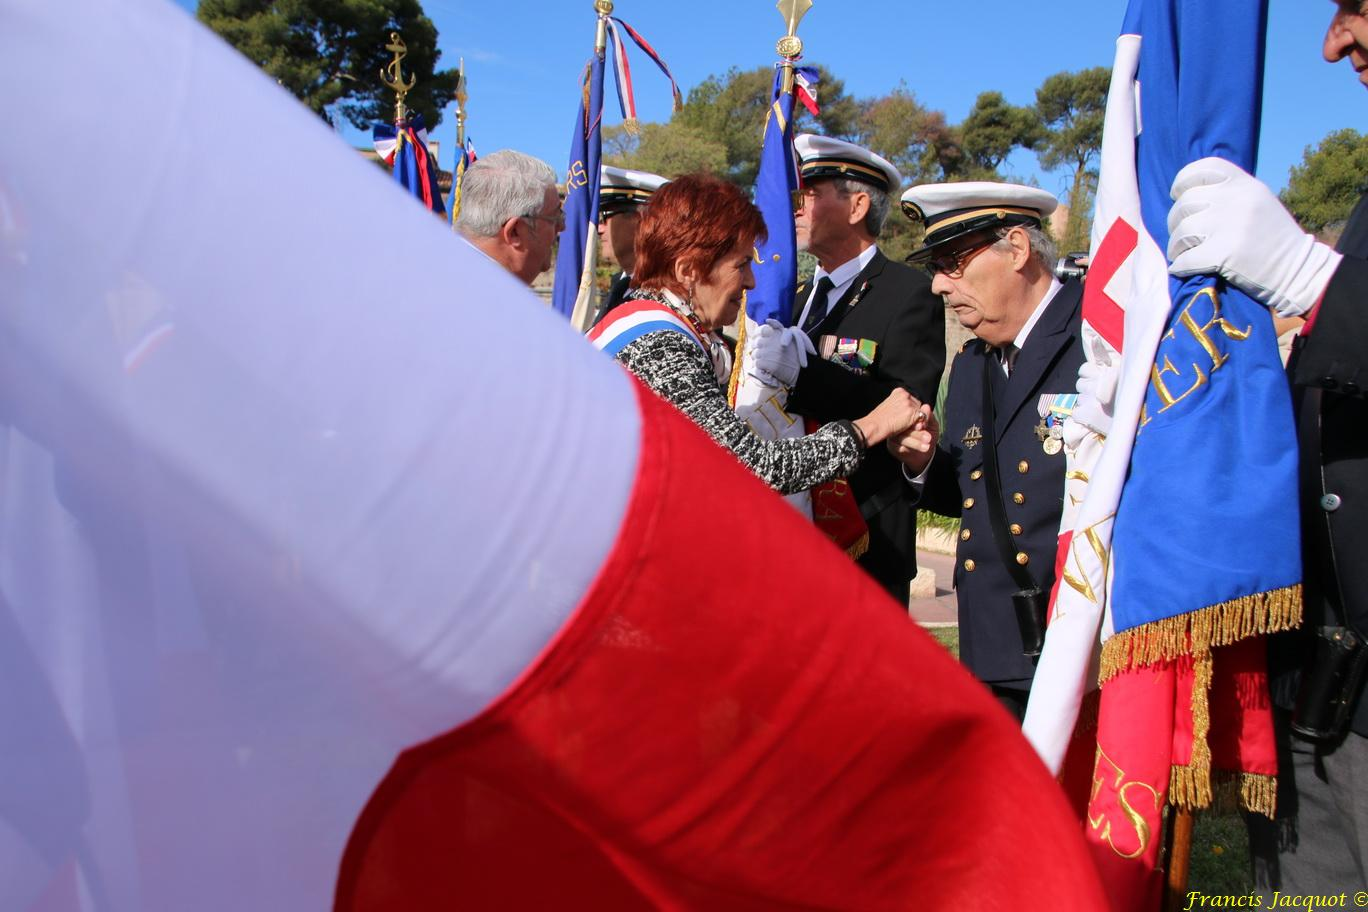 [Association anciens marins] AGASM section RUBIS (TOULON) - Page 6 2434912539